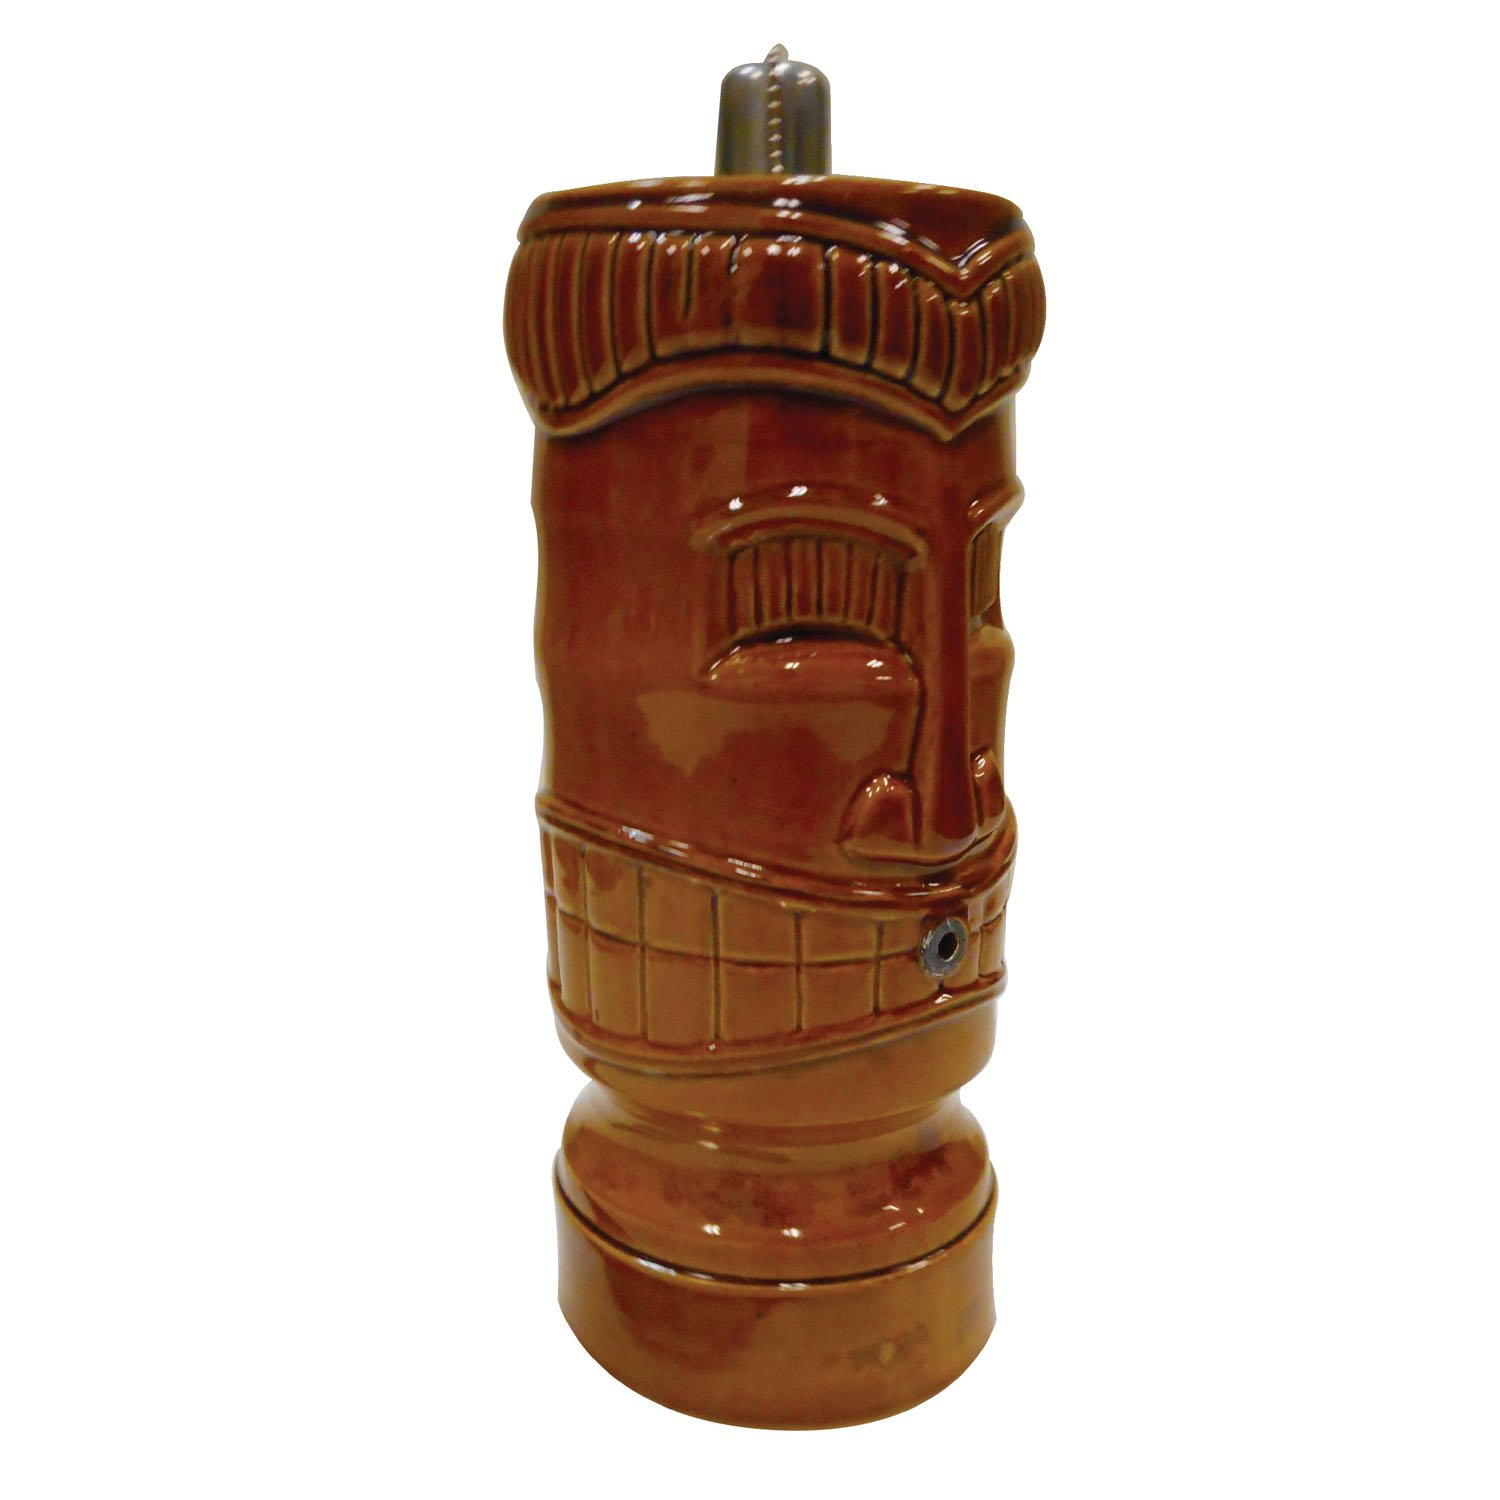 pond boss STIKIH Ceramic Tiki Torch Spitter, Honey